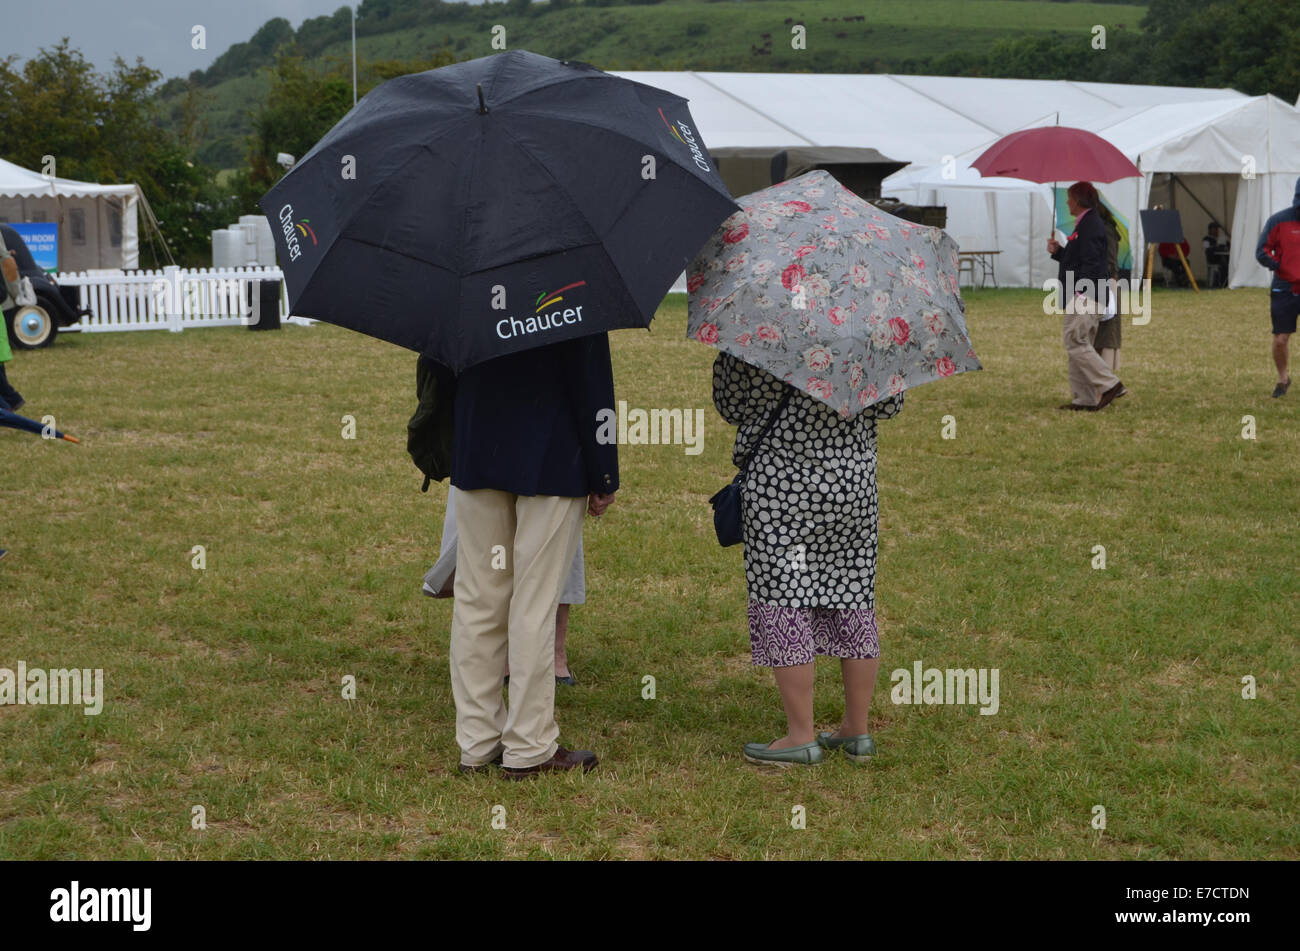 Raining at Chalke History Festival, Wiltshire UK 2014 - Stock Image